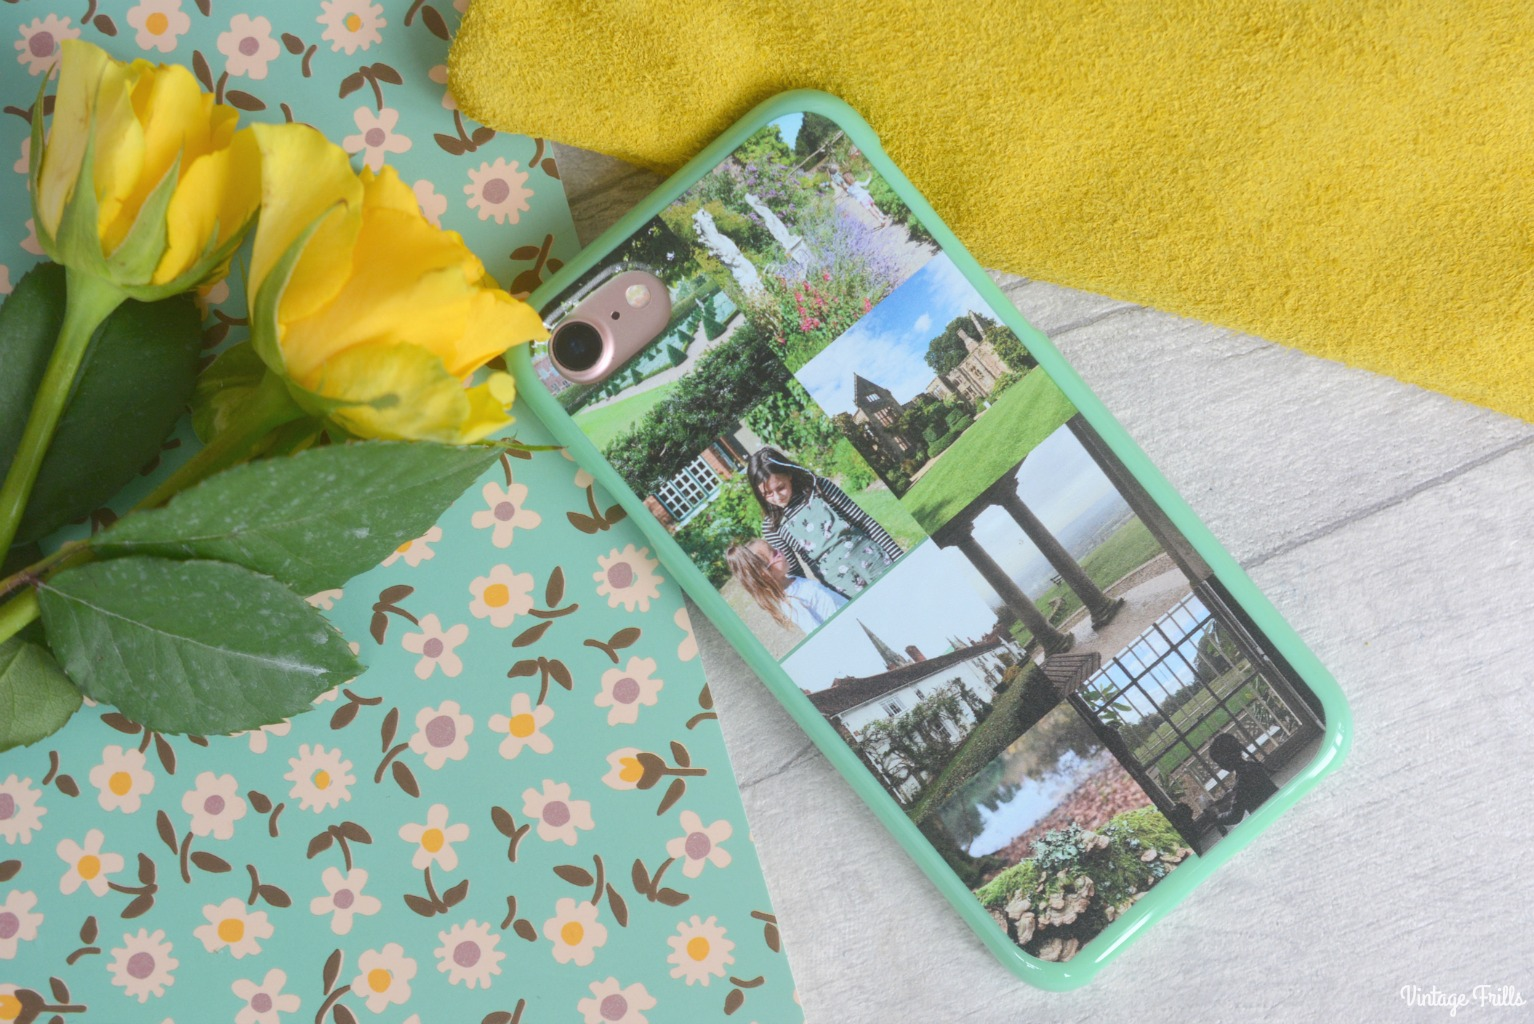 Creating a Personalised Phone Case with my Favourite Instagram Pics